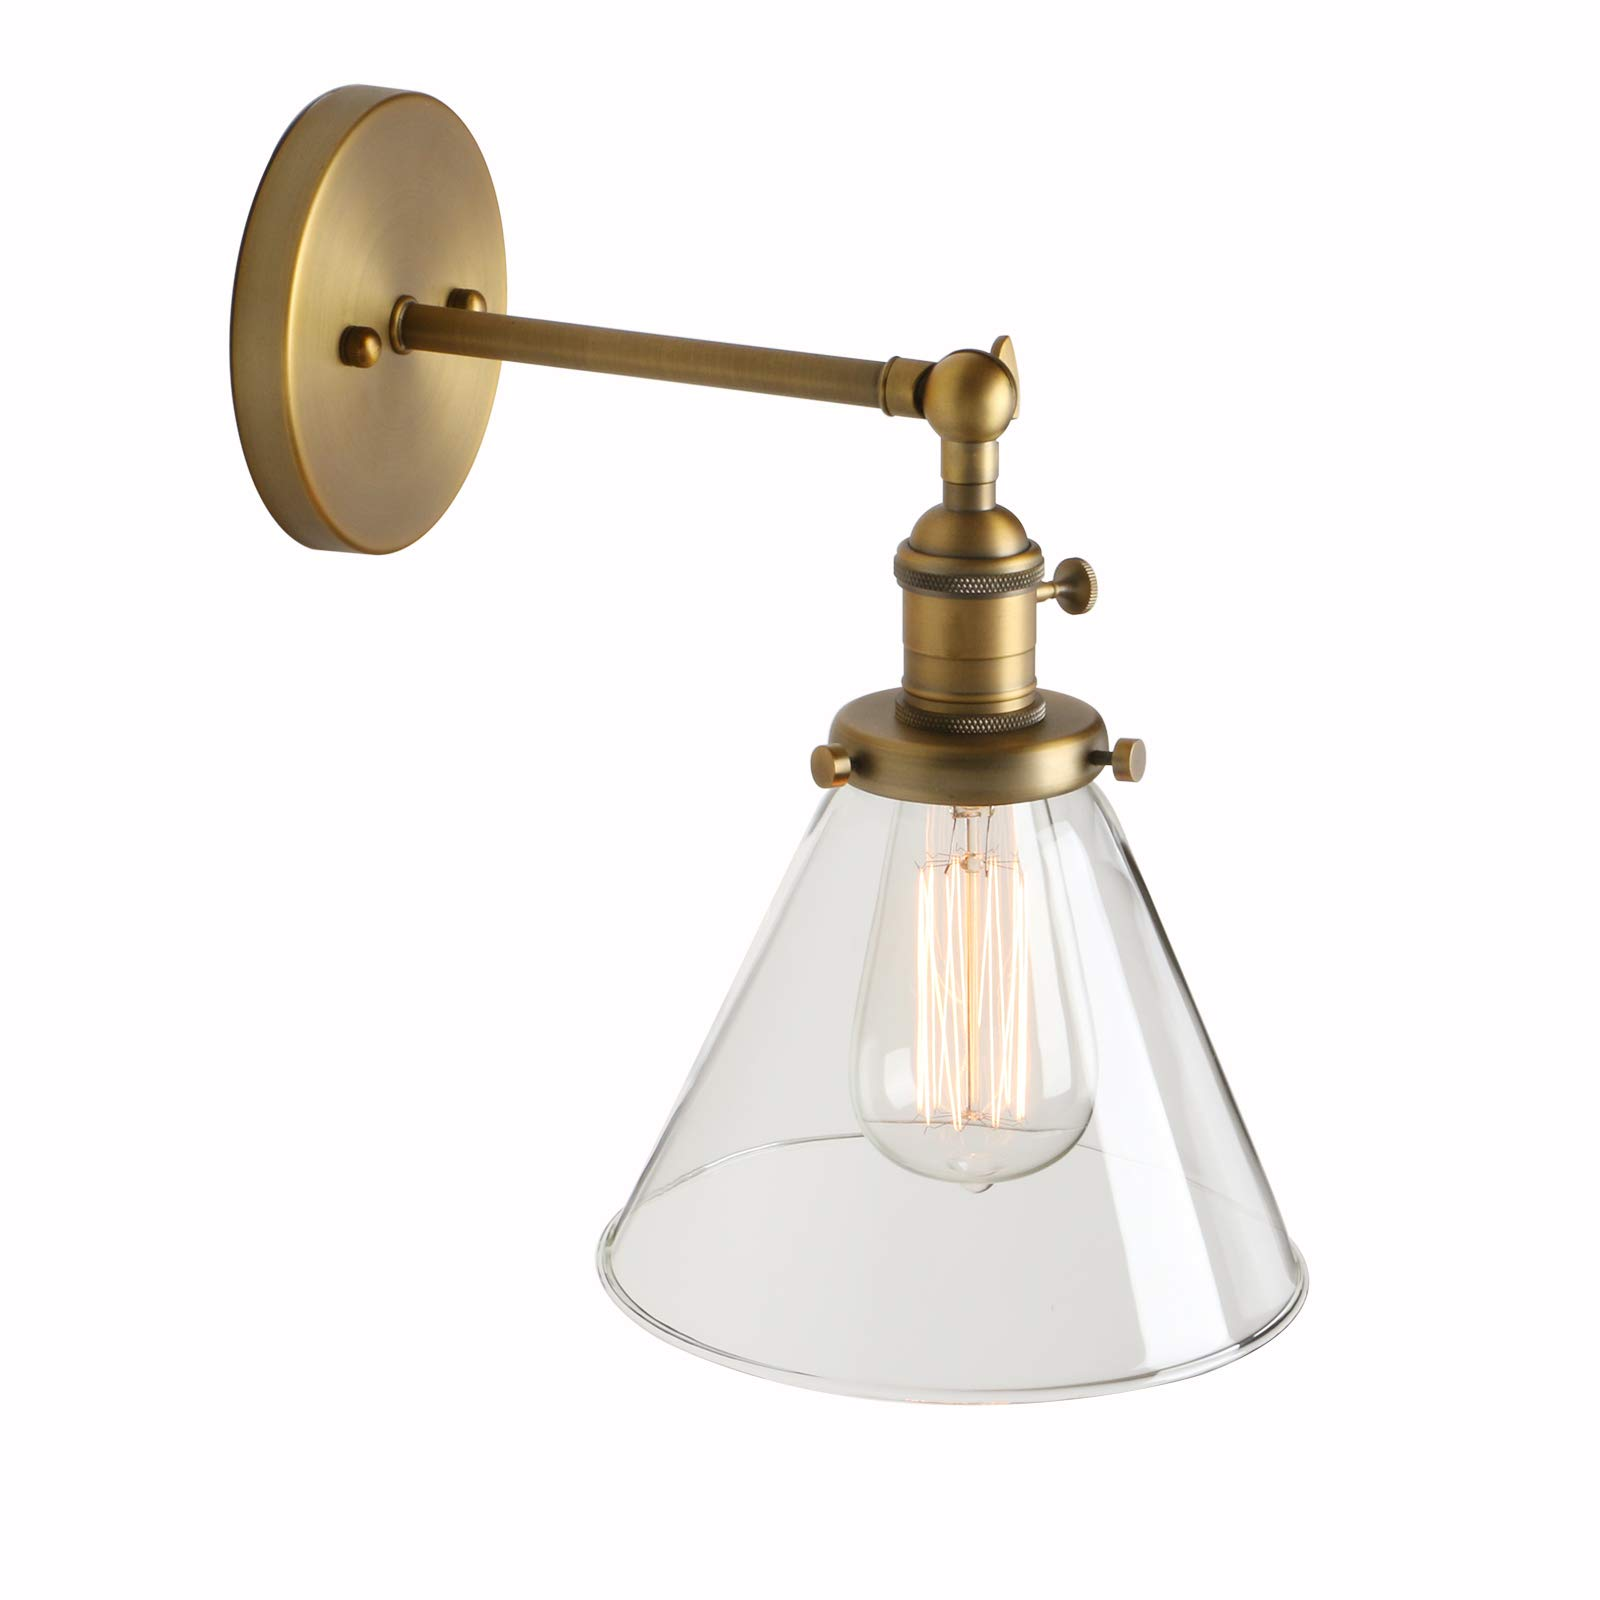 Loft Vintage Wall Light Dia 7.3'' Wall Lamp with Funnel Clear Glass Shade Design Vintage Industrial Home Wall Light Metal Base Cap Fixture Flush Mount Wall Sconce by Pathson Lights